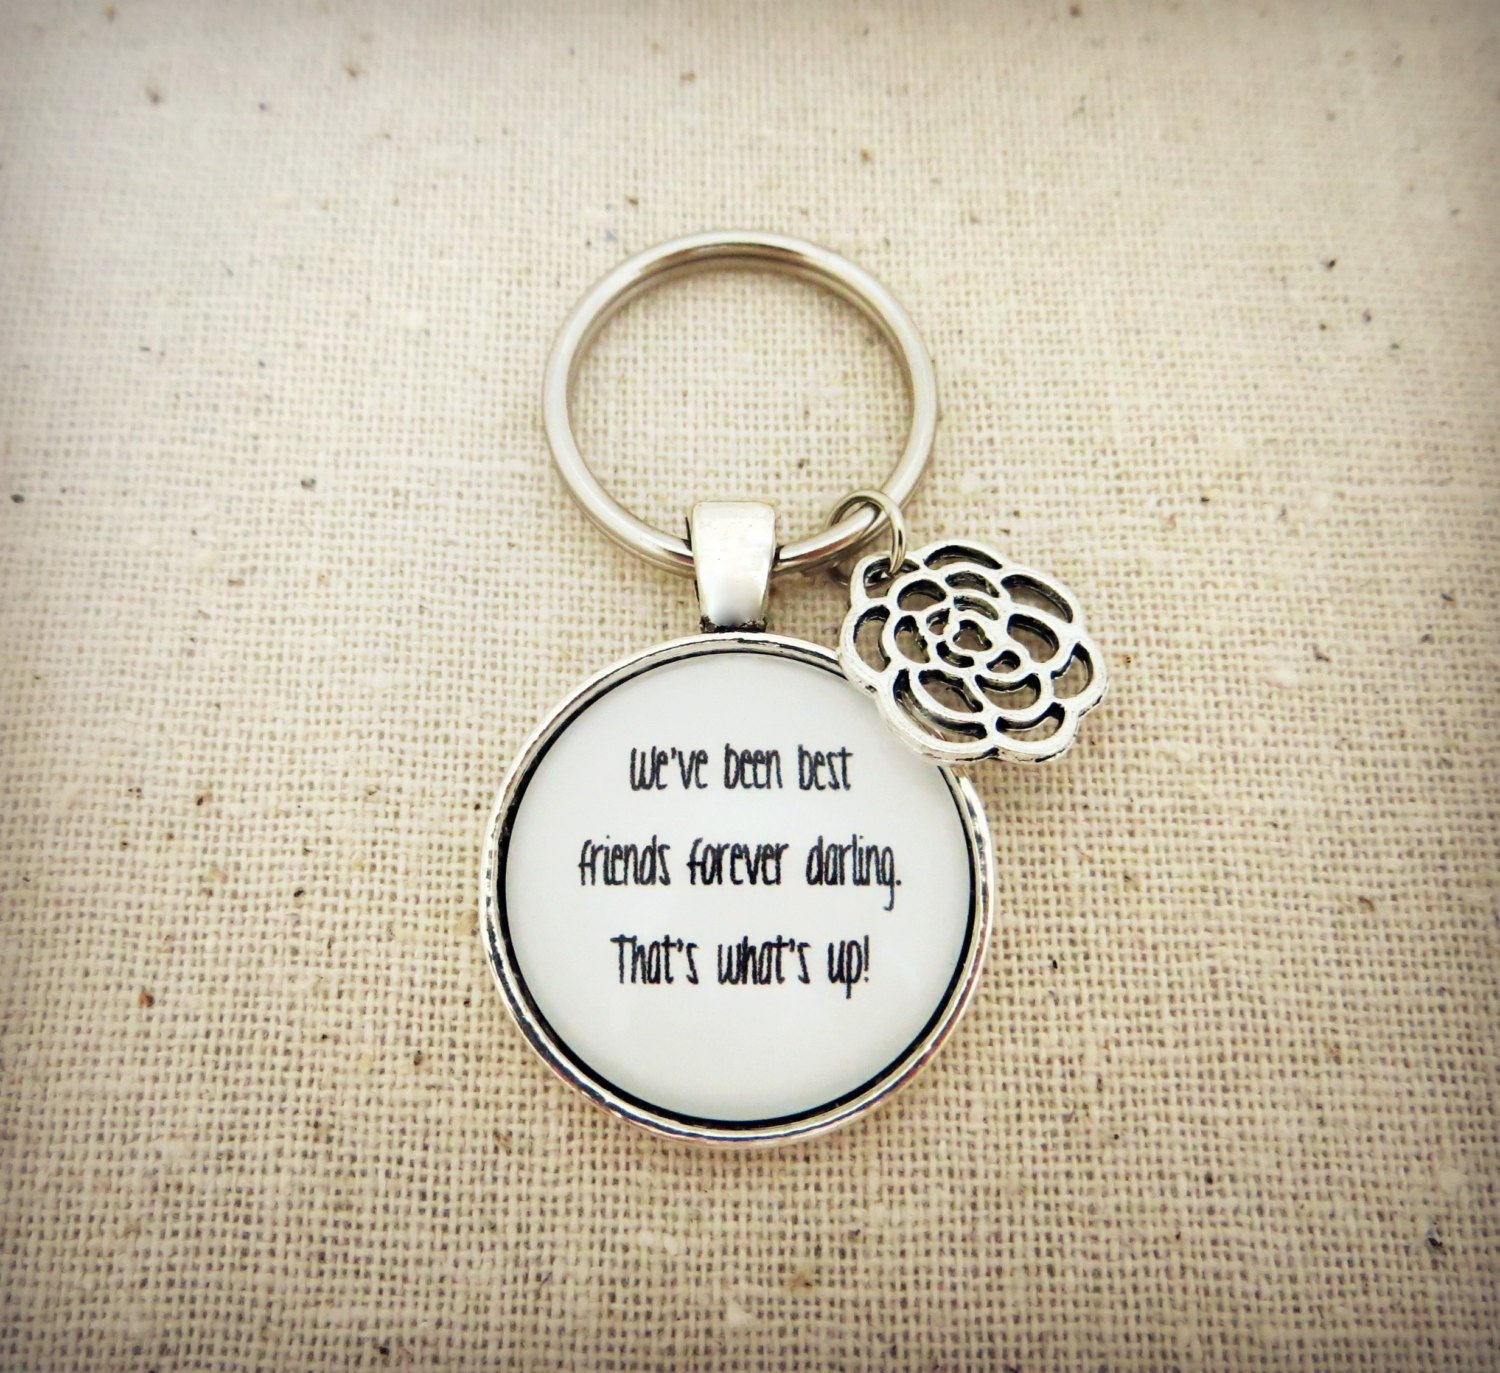 Edward Sharpe That's What's Up Inspired Lyrical Quote Keychain With Flower Charm